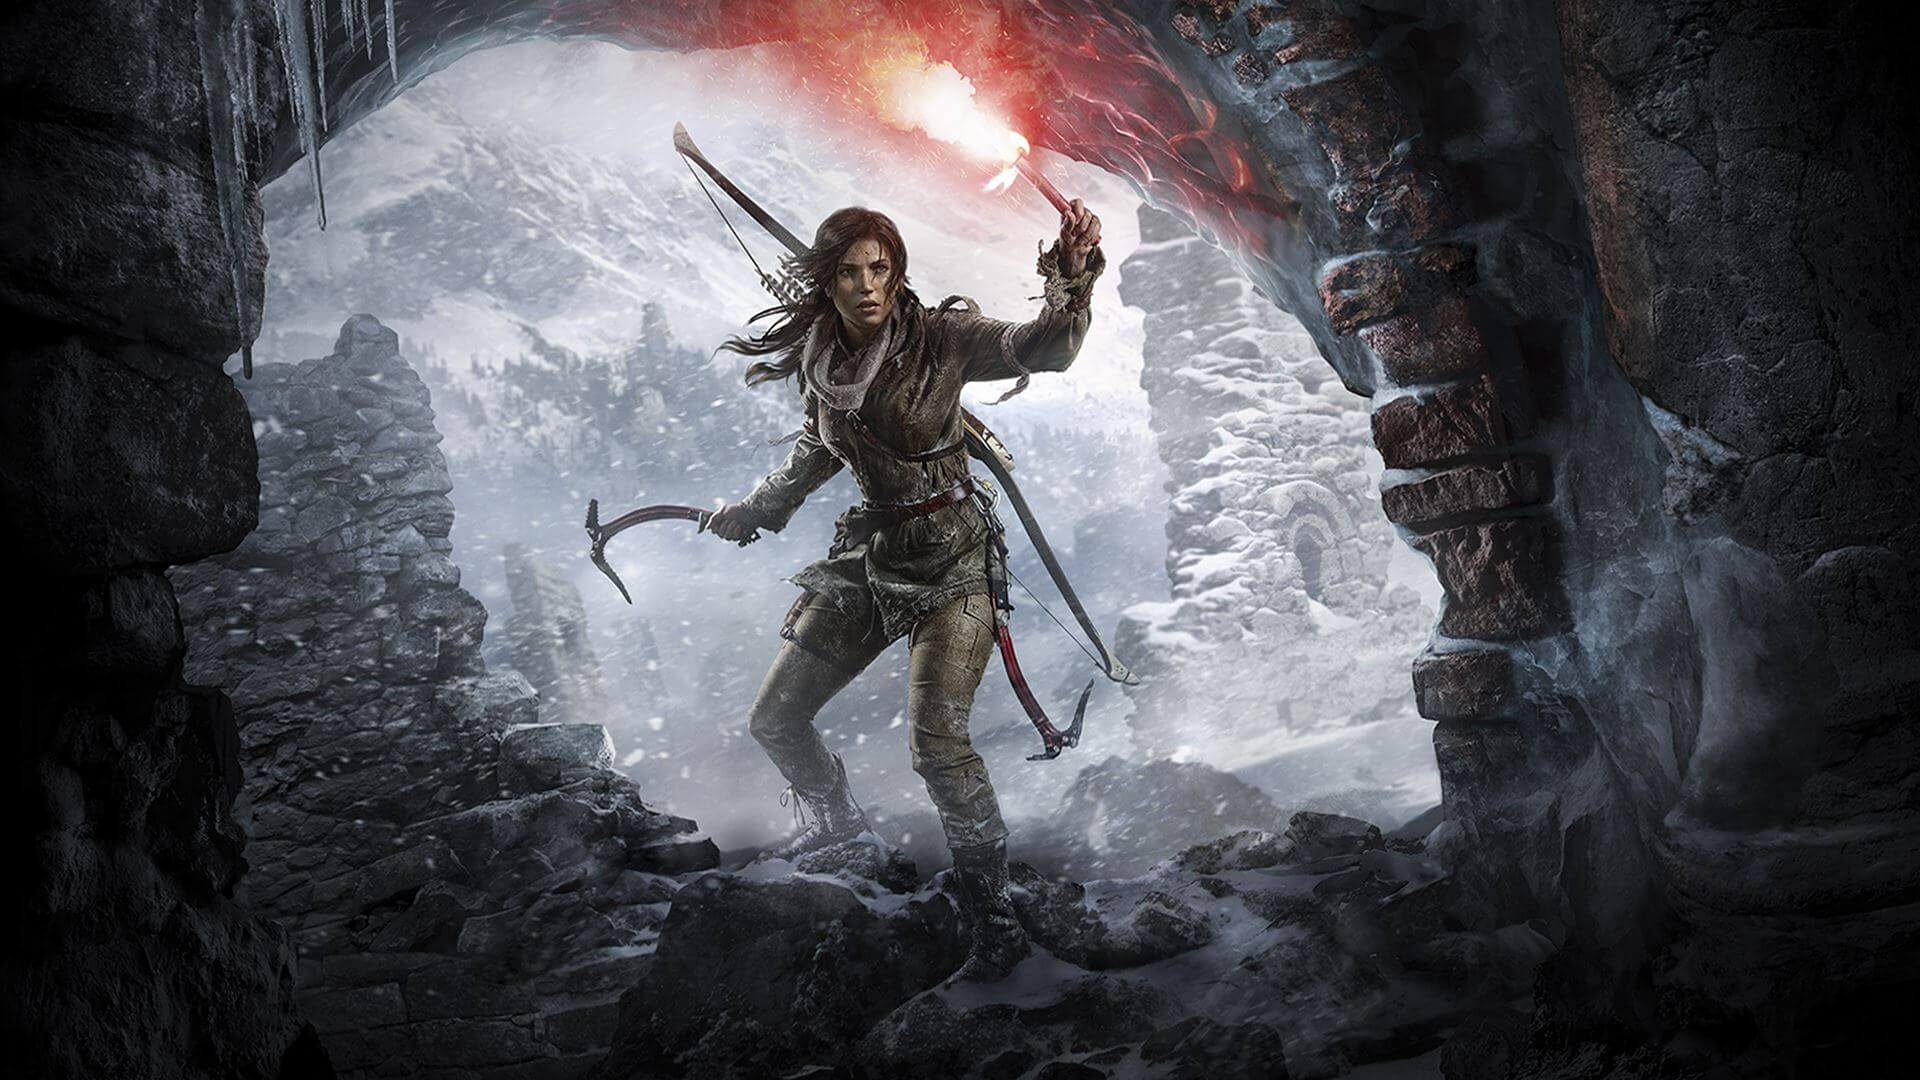 Hands On With Rise Of The Tomb Raiders Brilliant New PS4 Features image 3